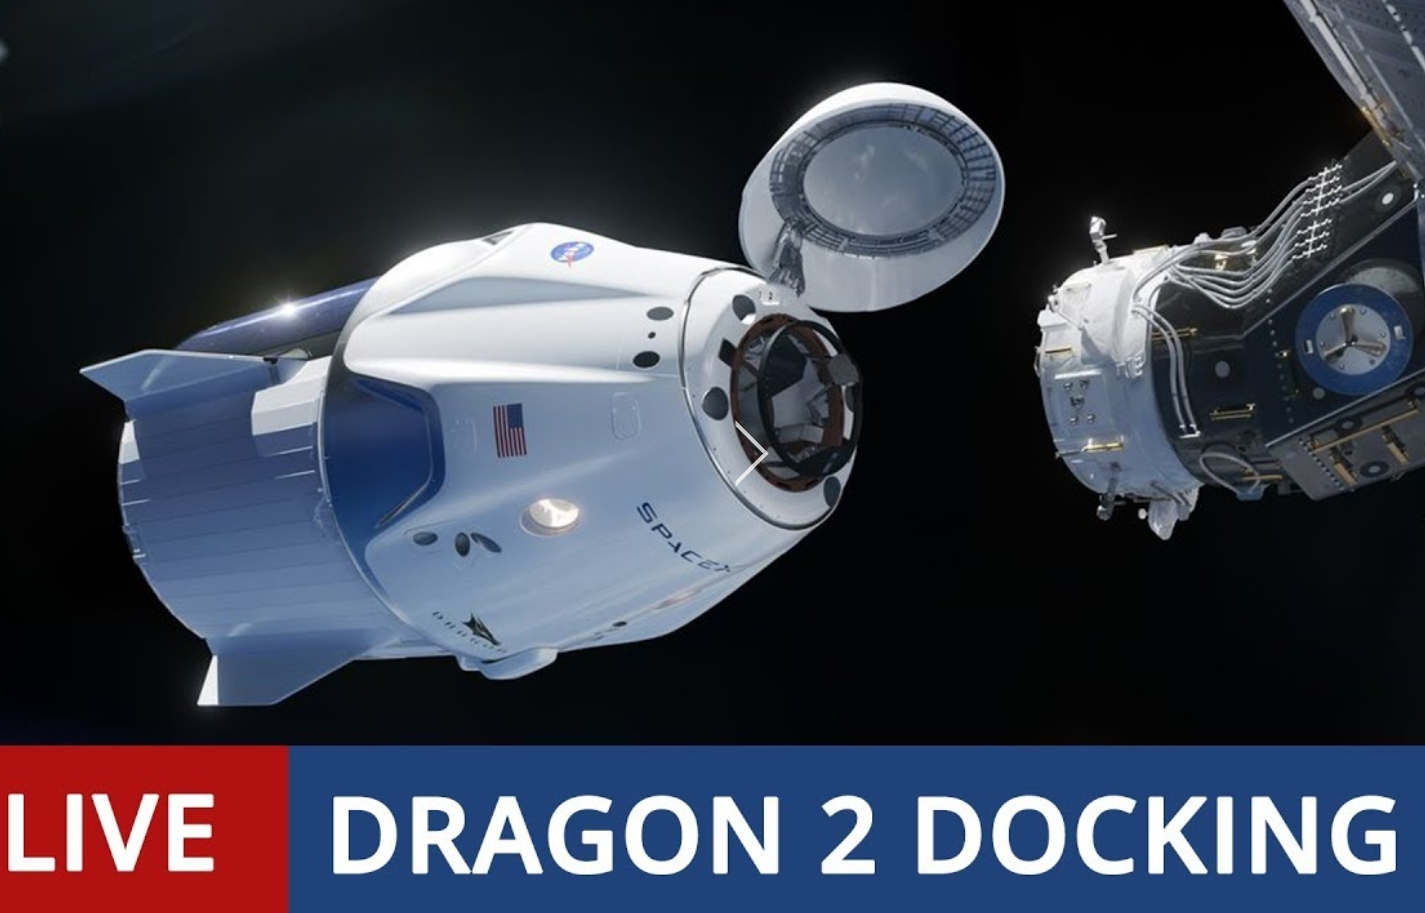 LIVE- Dragon 2 Docking to Space Station for DM-1 Historic Mission